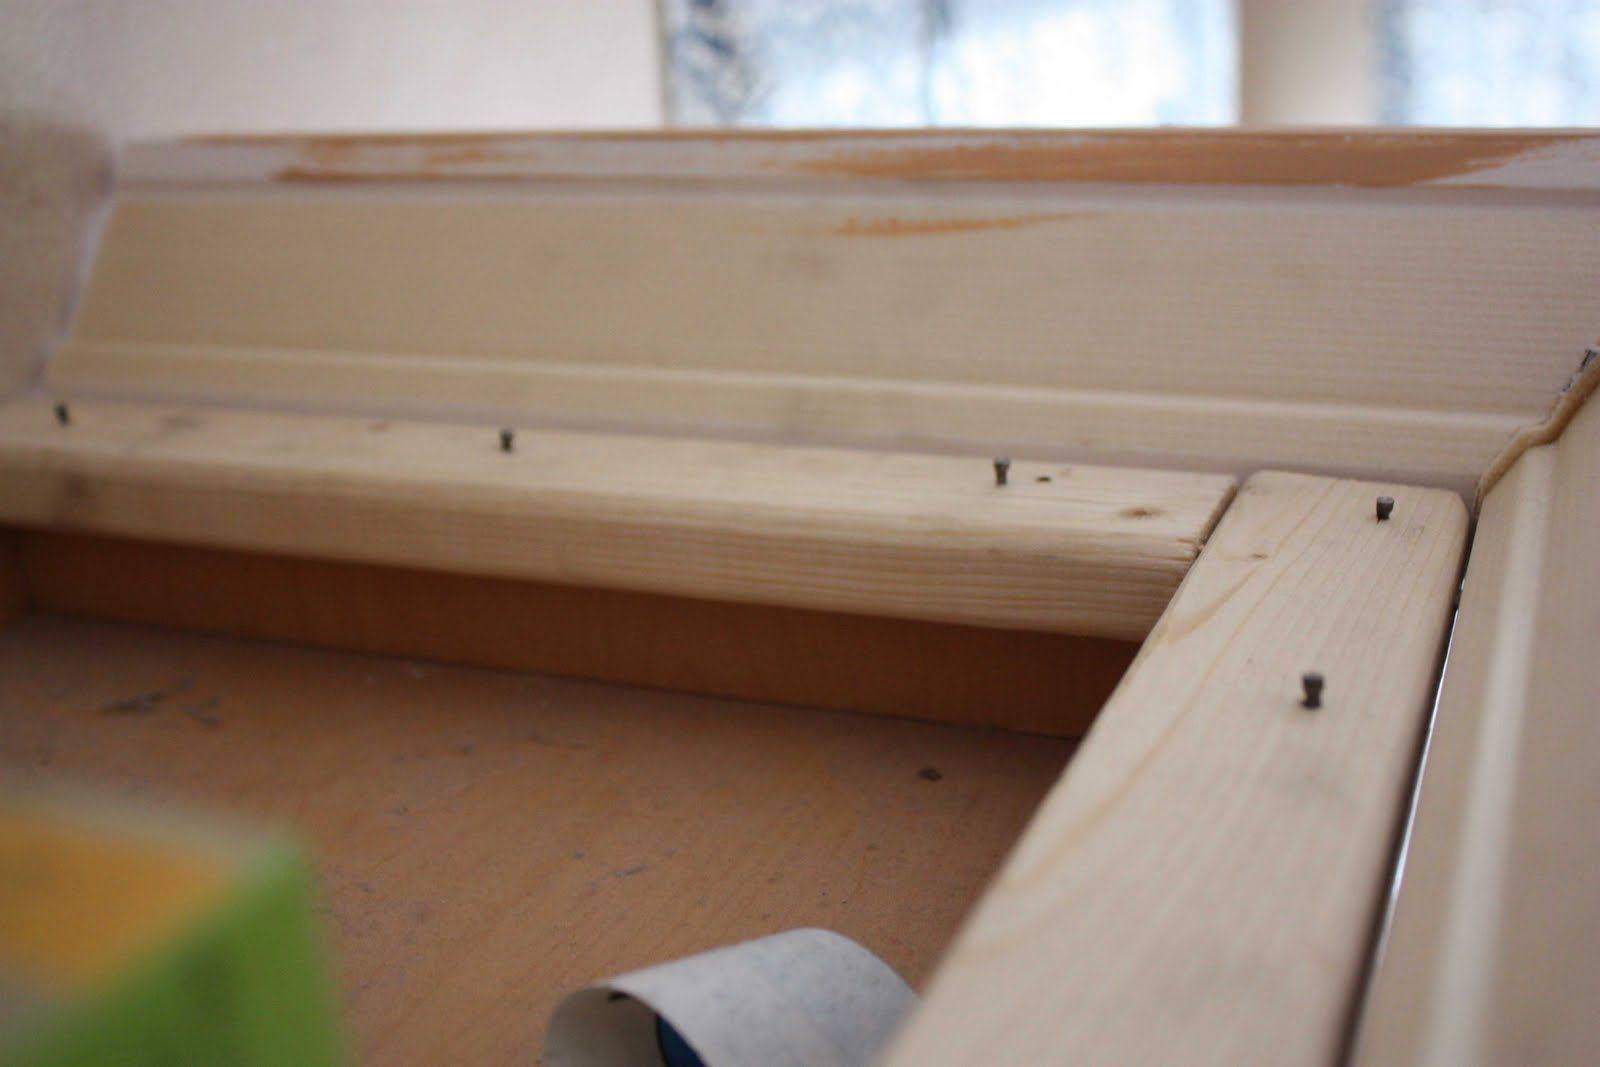 transforming home how to add crown molding kitchen how to put crown molding on top of kitchen cabinets      rh   functionalities net